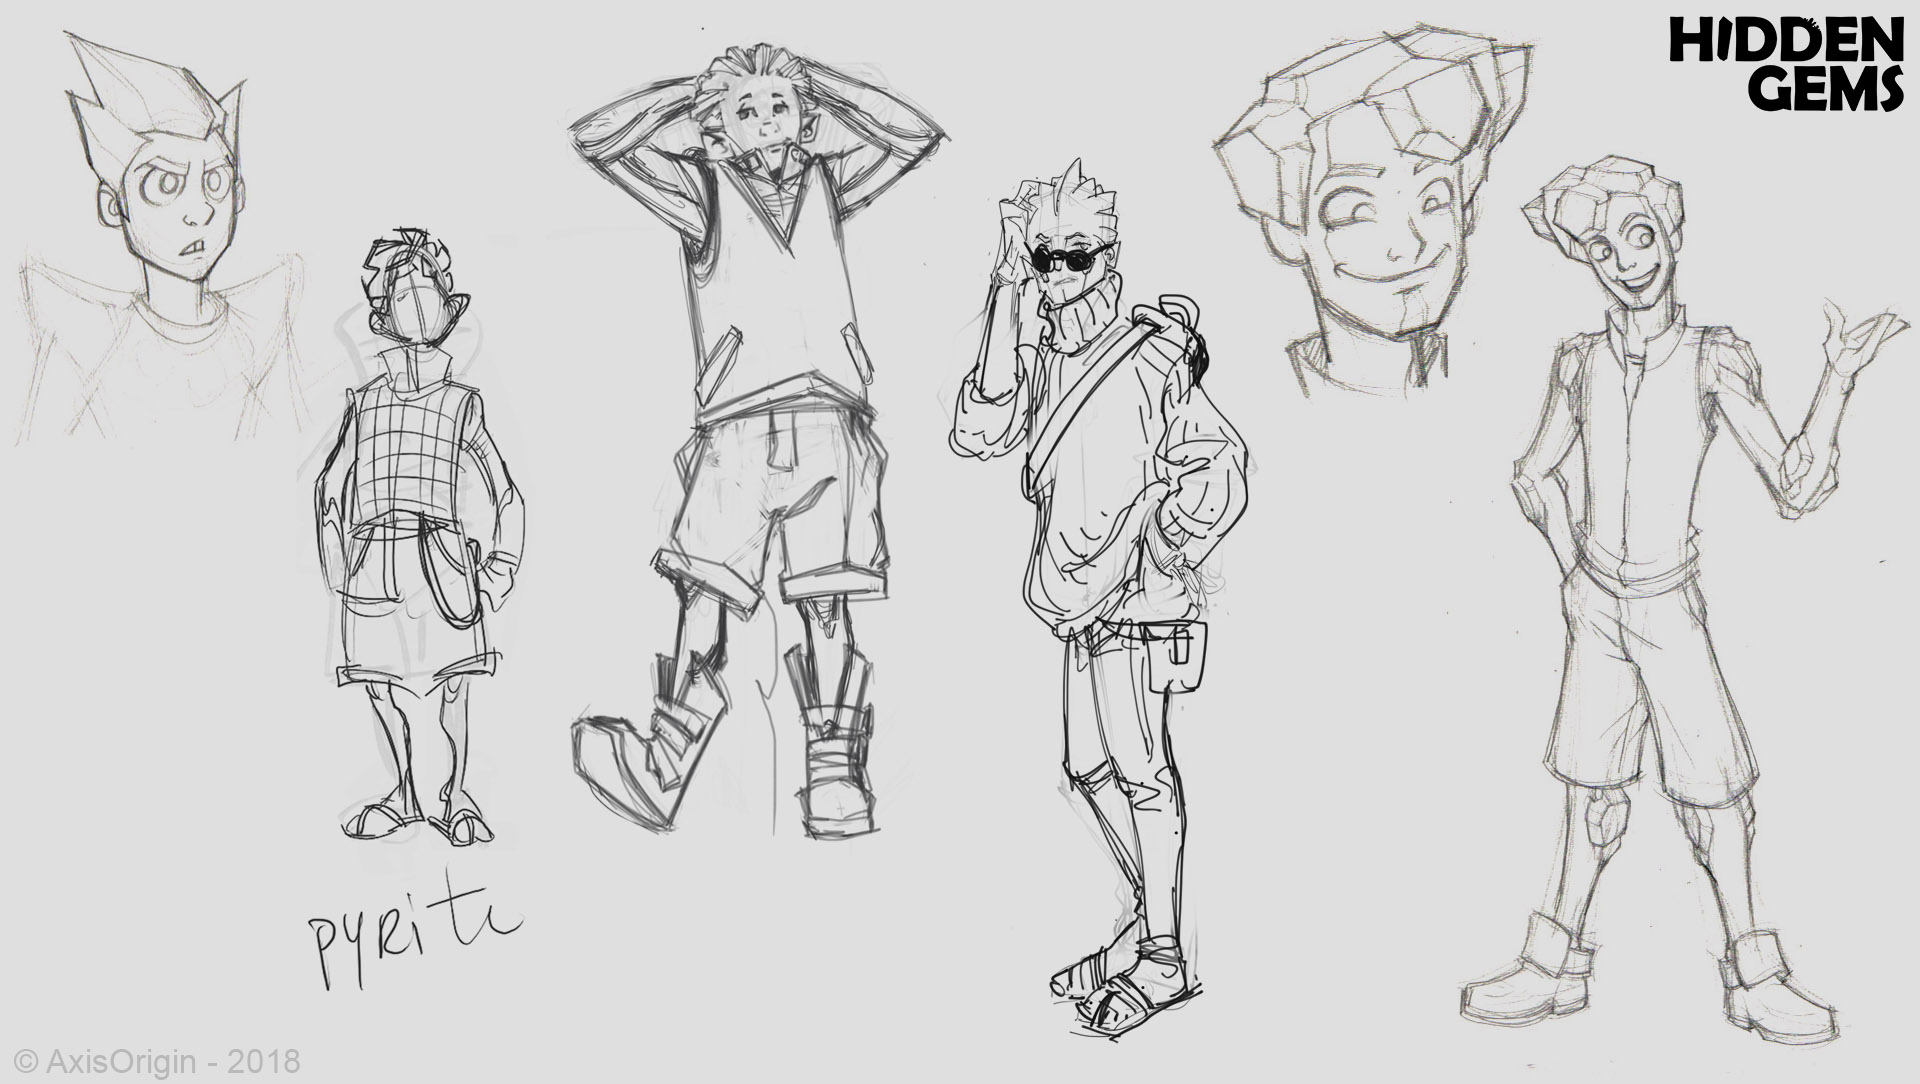 Early Pyrite Character Designs by Joel Sigua and Jose-Luis Segura